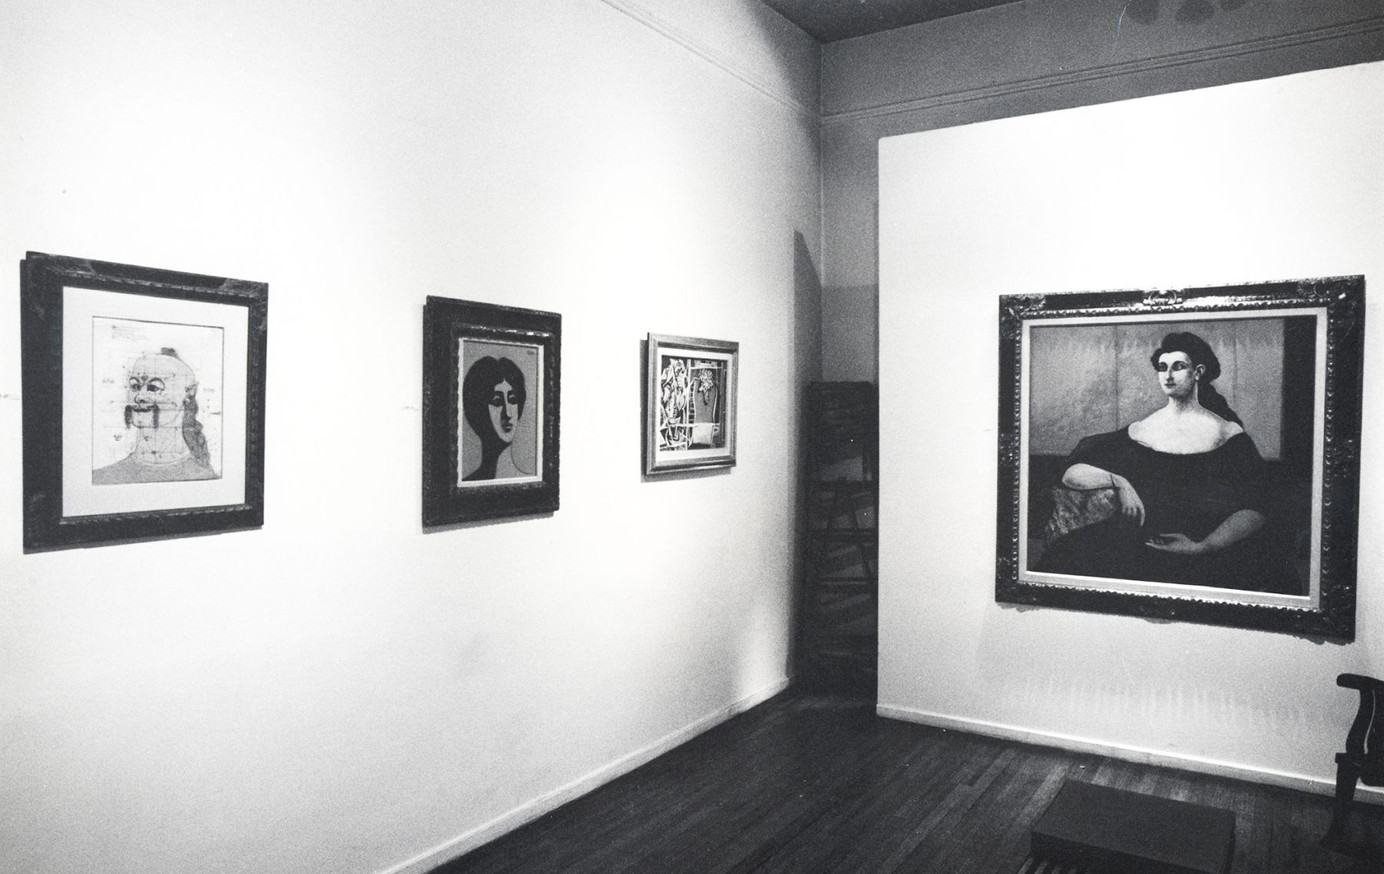 Installation View John Graham and His Friends November 3 - 21, 1981 Allan Stone Gallery